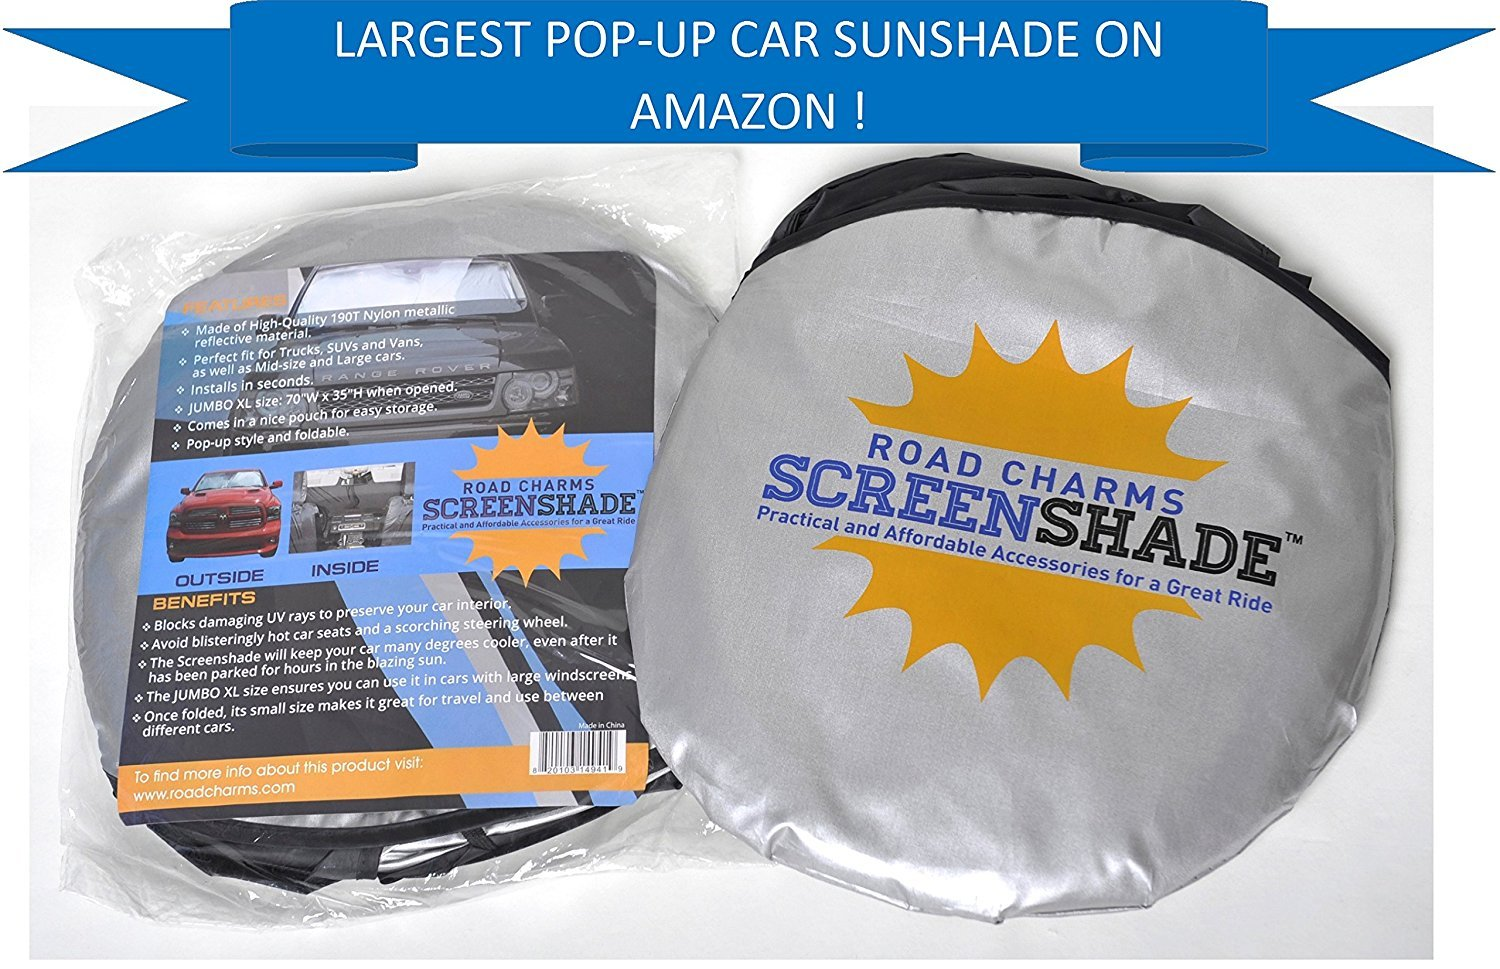 Best rated in automotive window sunshades helpful customer reviews windshield sun shade jumbo xl 70 x 35 inches car window shade easy to use folding shade nylon uv protector keeps car cool pop up style great fit fandeluxe Gallery